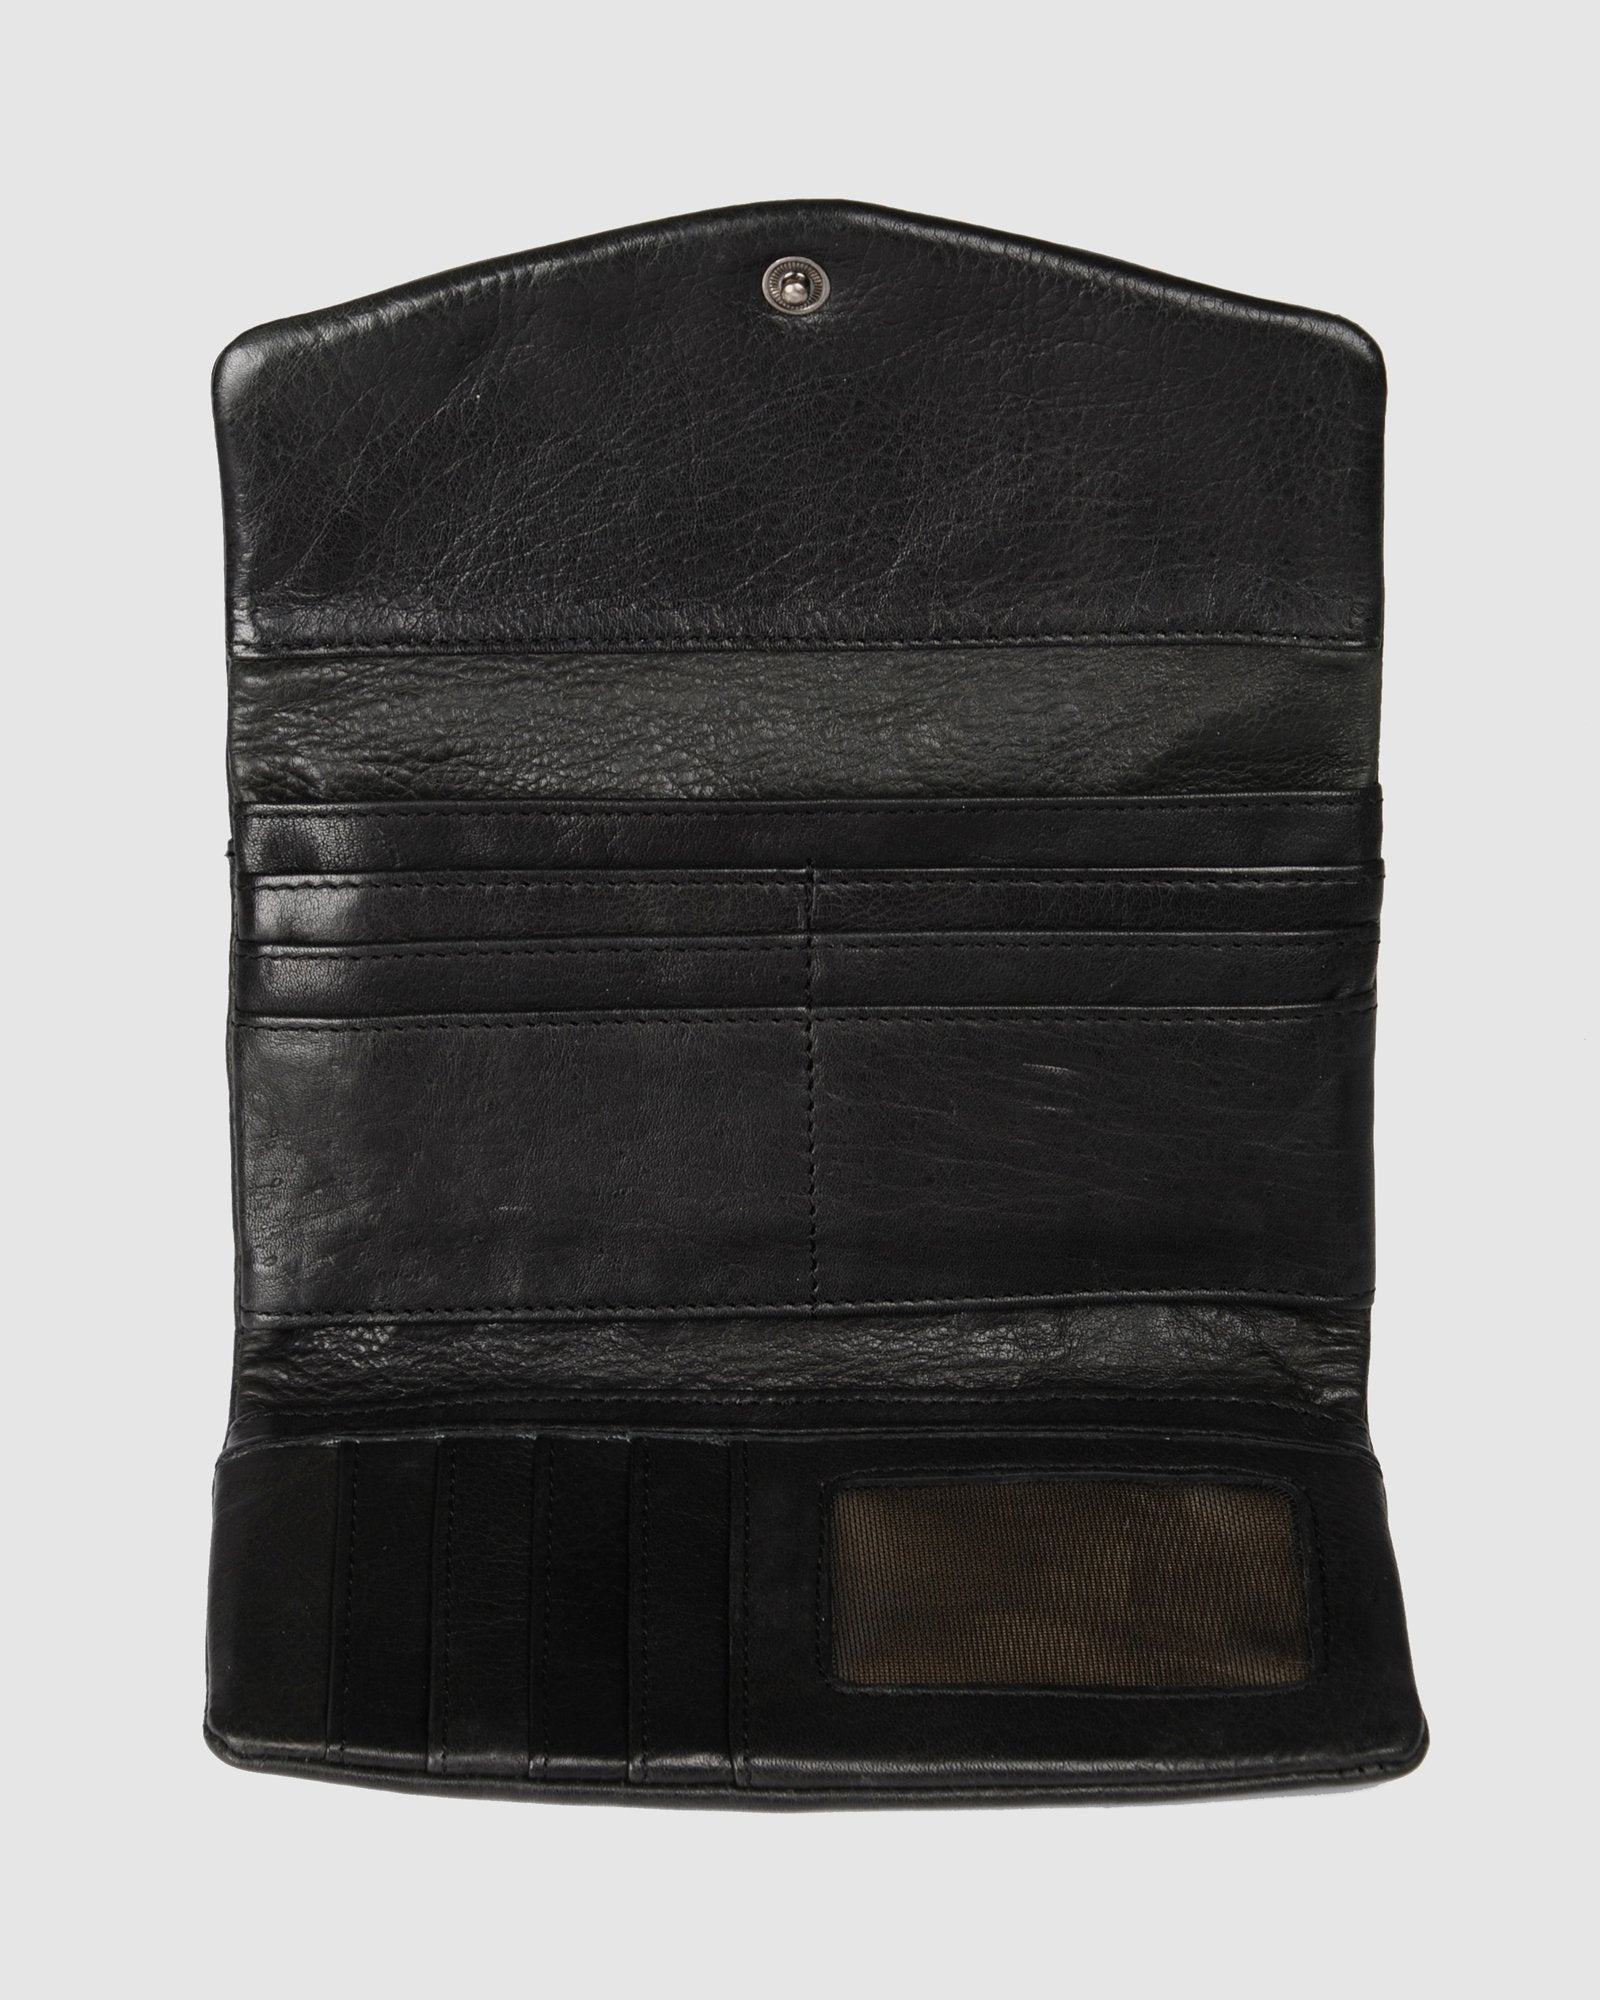 BIBA JERSEY SUMMER WALLET BLACK LEATHER